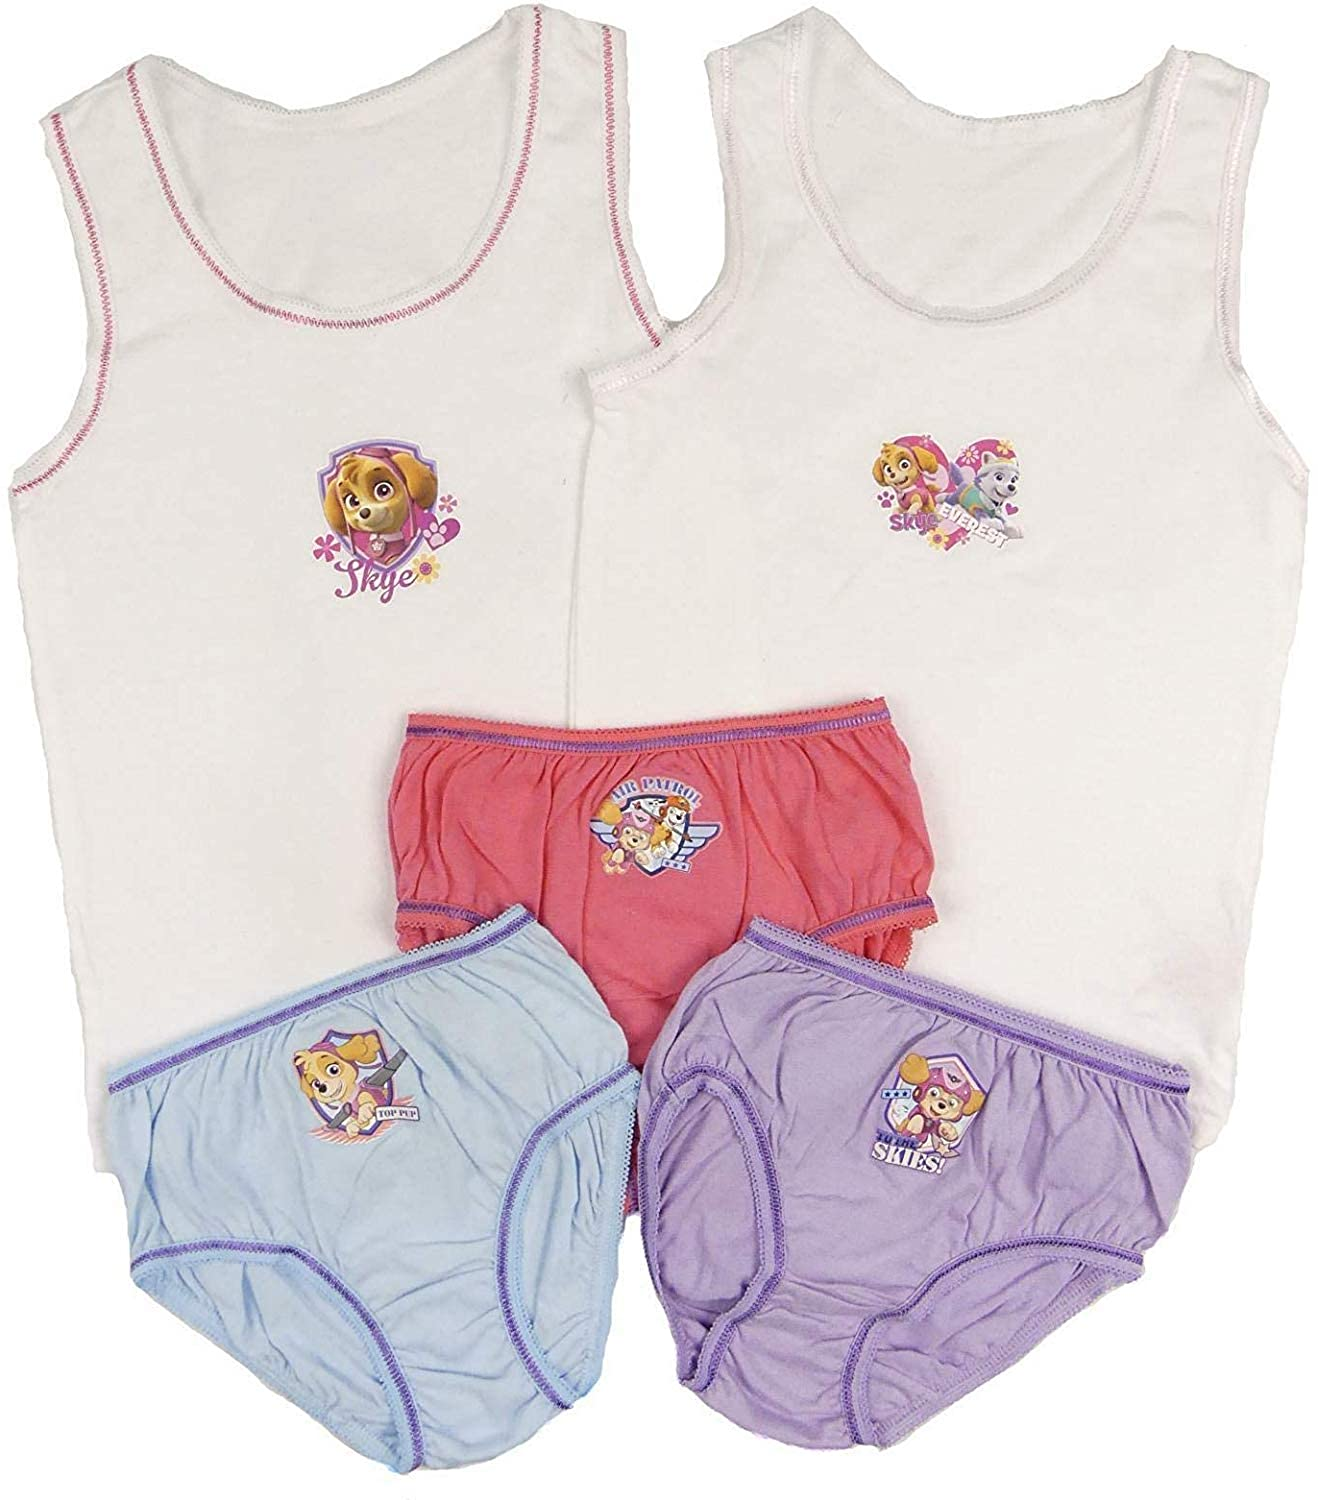 2-3 Years, Bing Girls Girls Character Pants and Vests Sets 18-24mth up to 7-8 Years